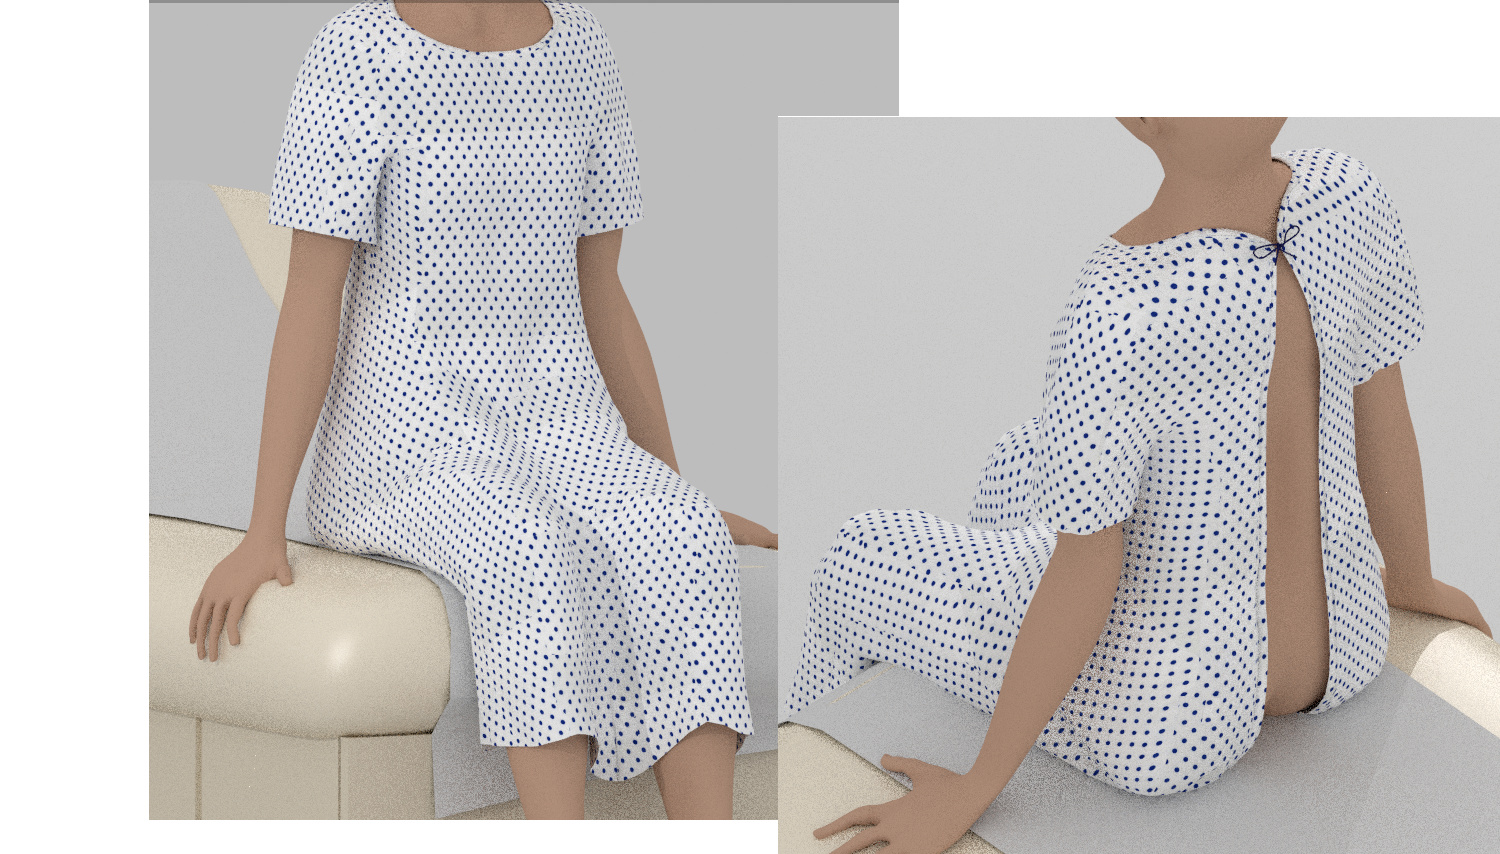 Seams on a hospital gown - Materials and Textures - Blender Artists ...